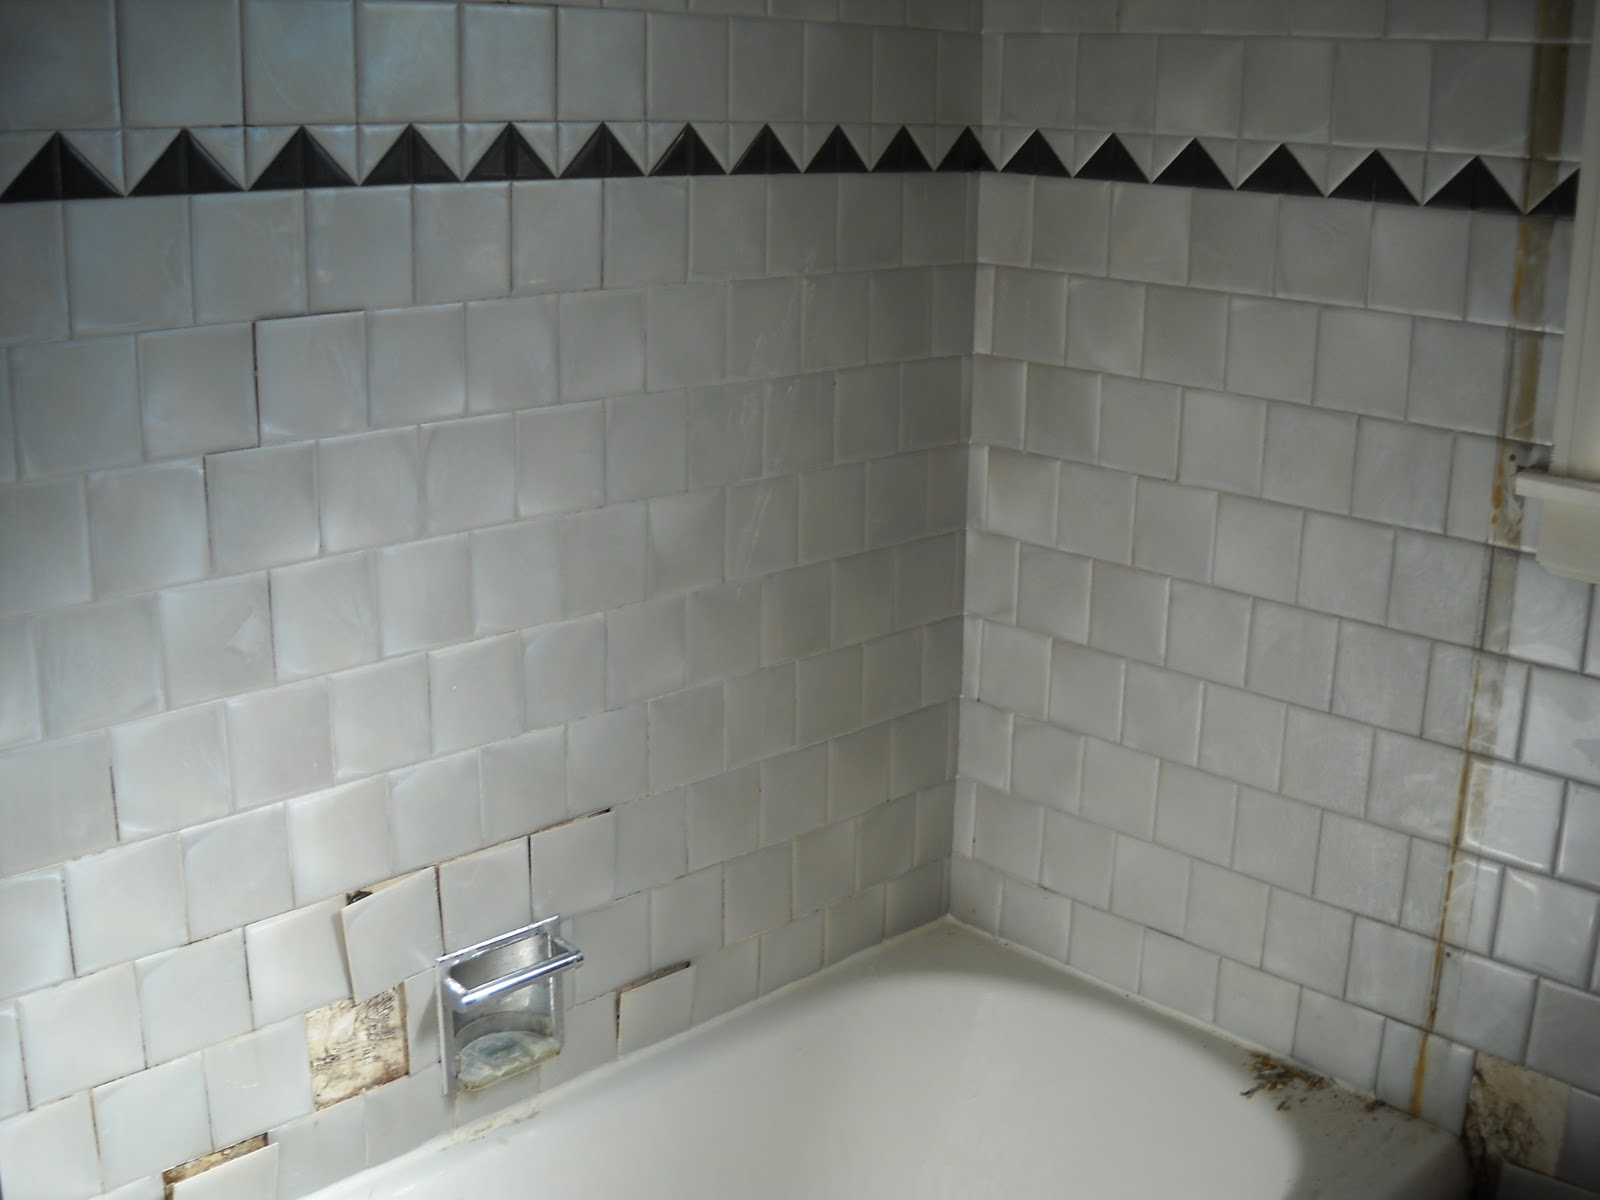 Home depot bathroom paint ideas - Home Depot Bathroom Tile Paint